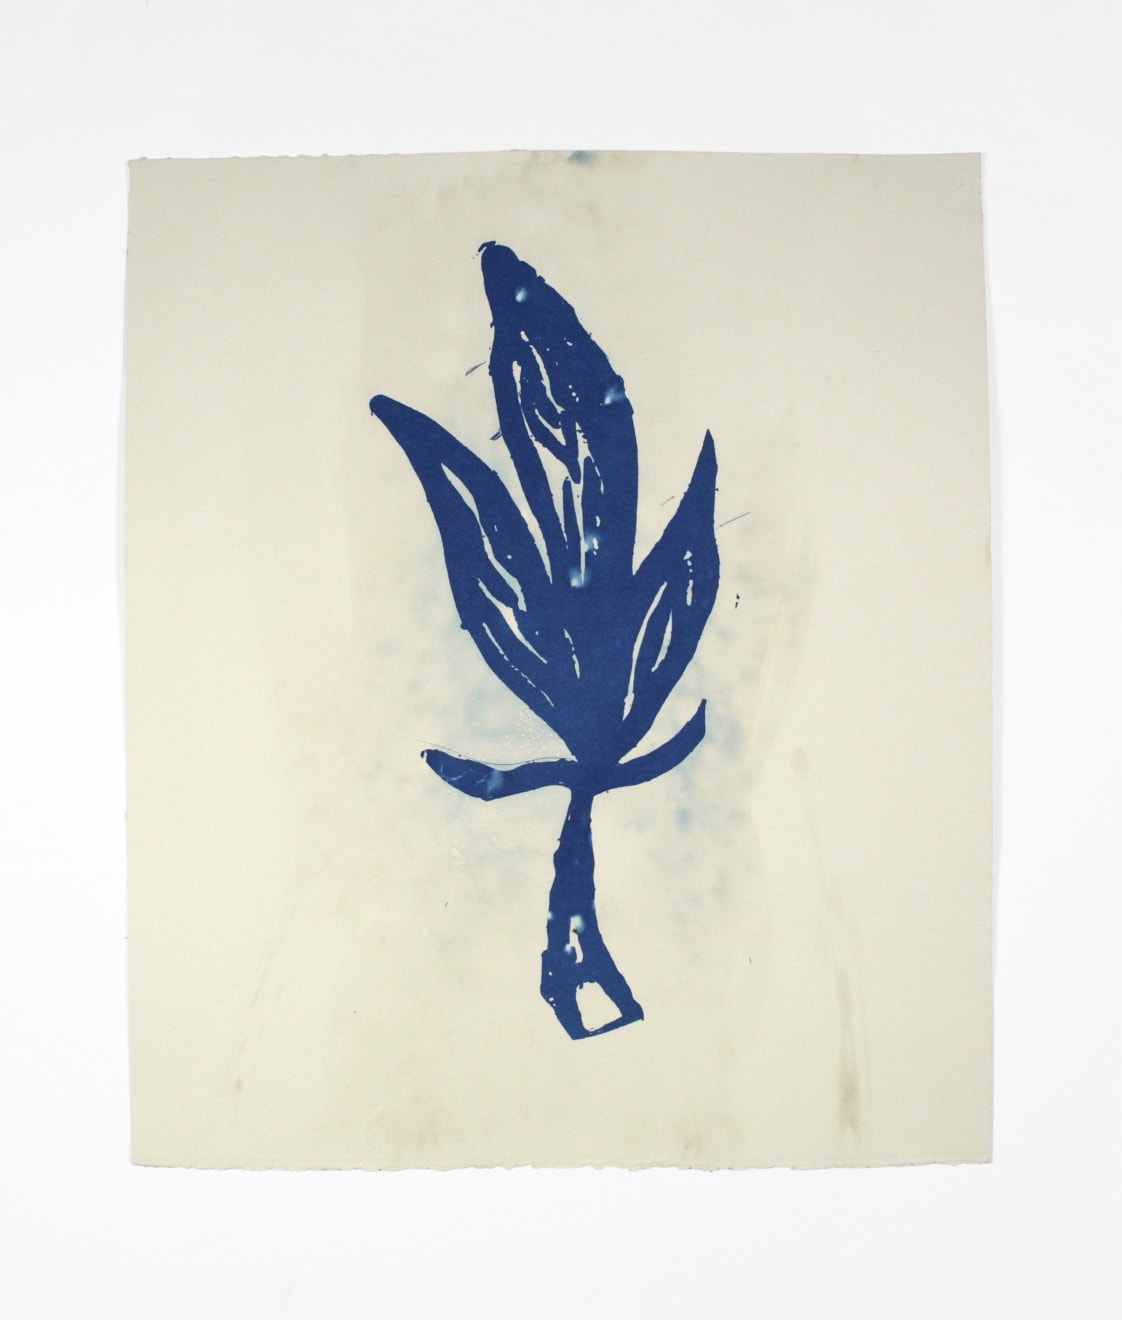 Dario Robleto Azures of the Natural World (Hendrix), 2014 cyanotype, ghost image of an original drawing by Jimi Hendrix, sunlight, ocean water, watercolor paper 13 1/8 x 11 in (33.3 x 27.9 cm) DR 370 SOLD